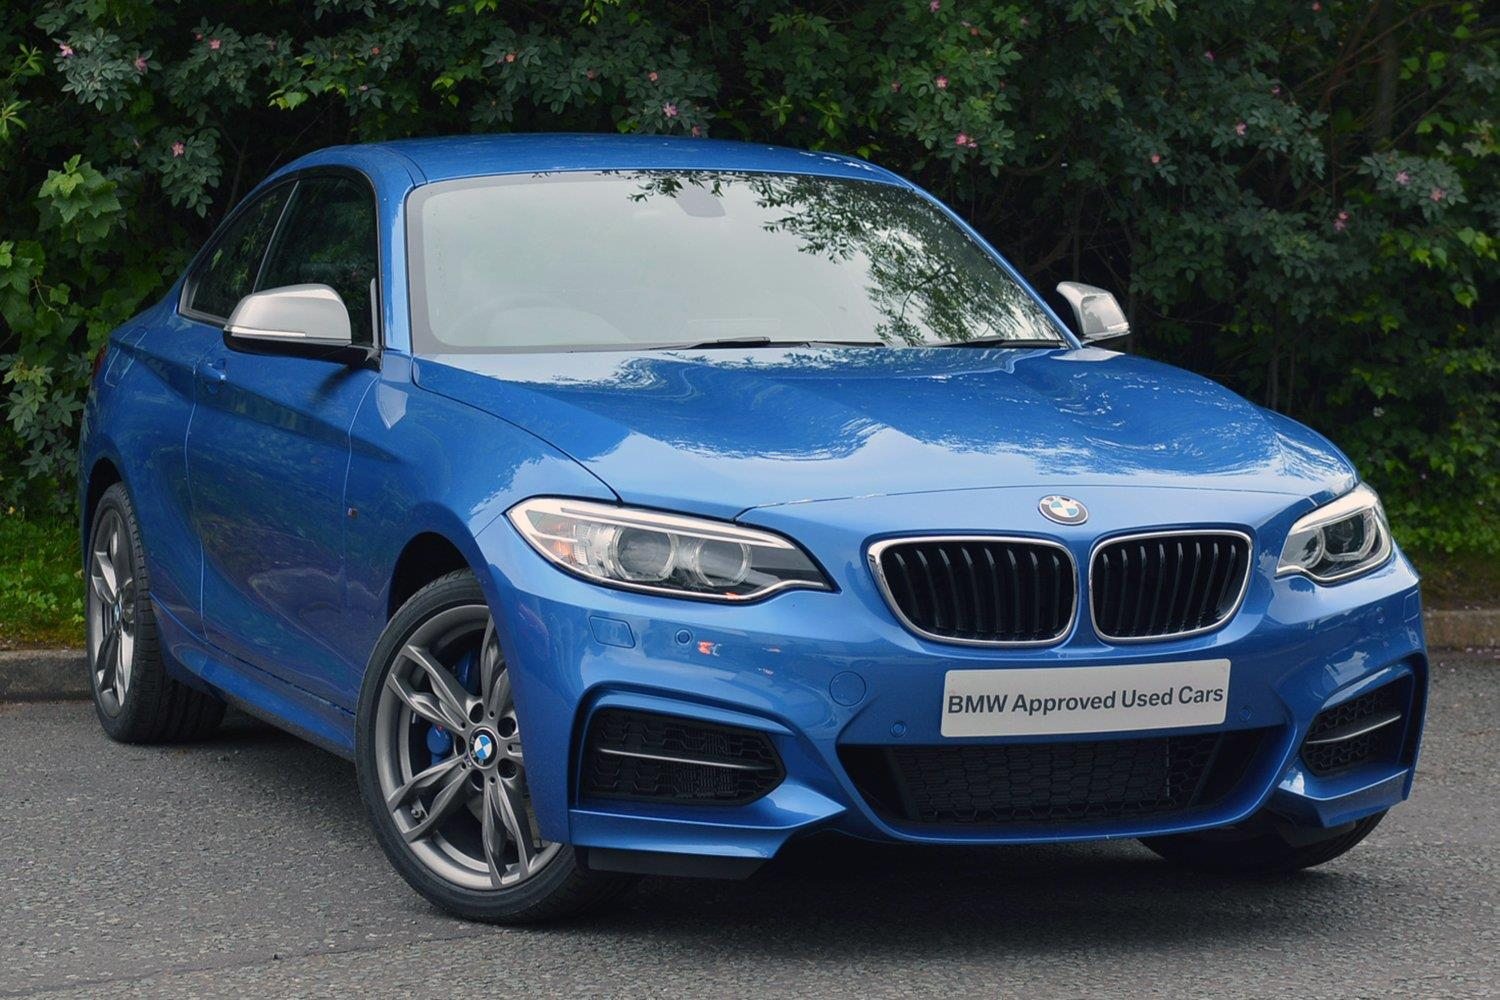 BMW 2 Series Coupé MW17YNV - Image 9